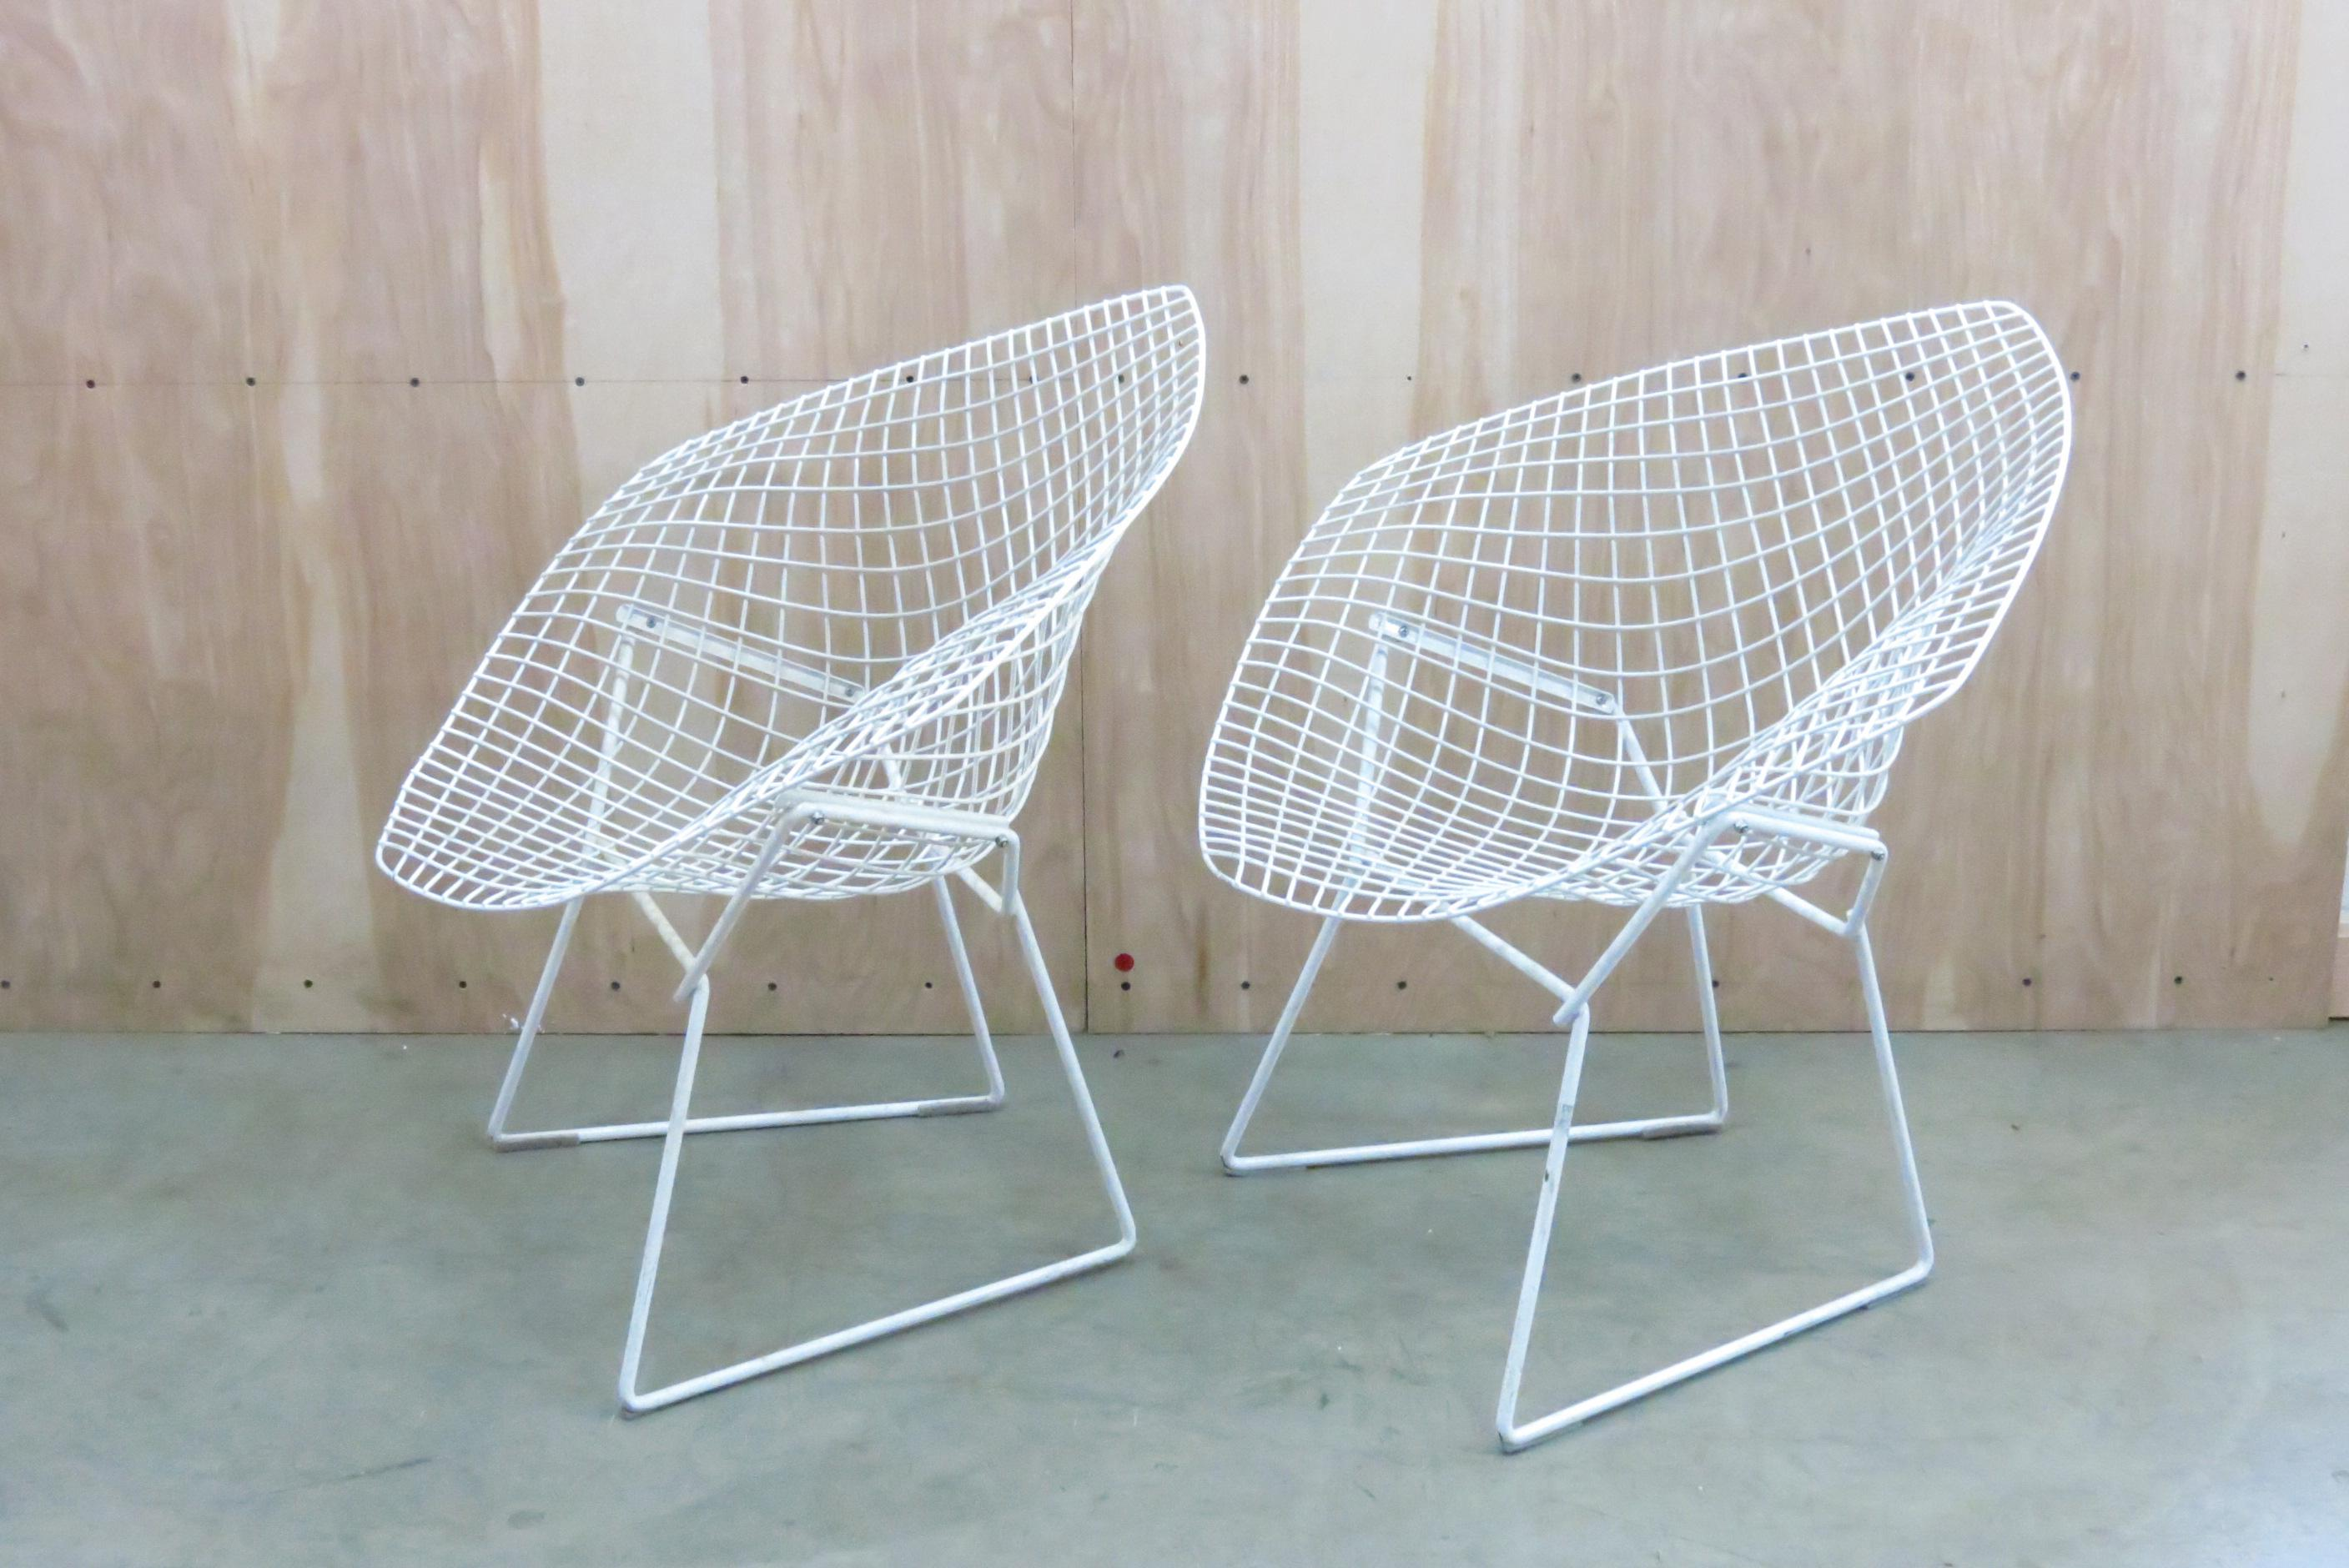 Vintage MODERN Pair Of Small Harry Bertoia Diamond Chairs Manufactured By  Knoll. A Classic,